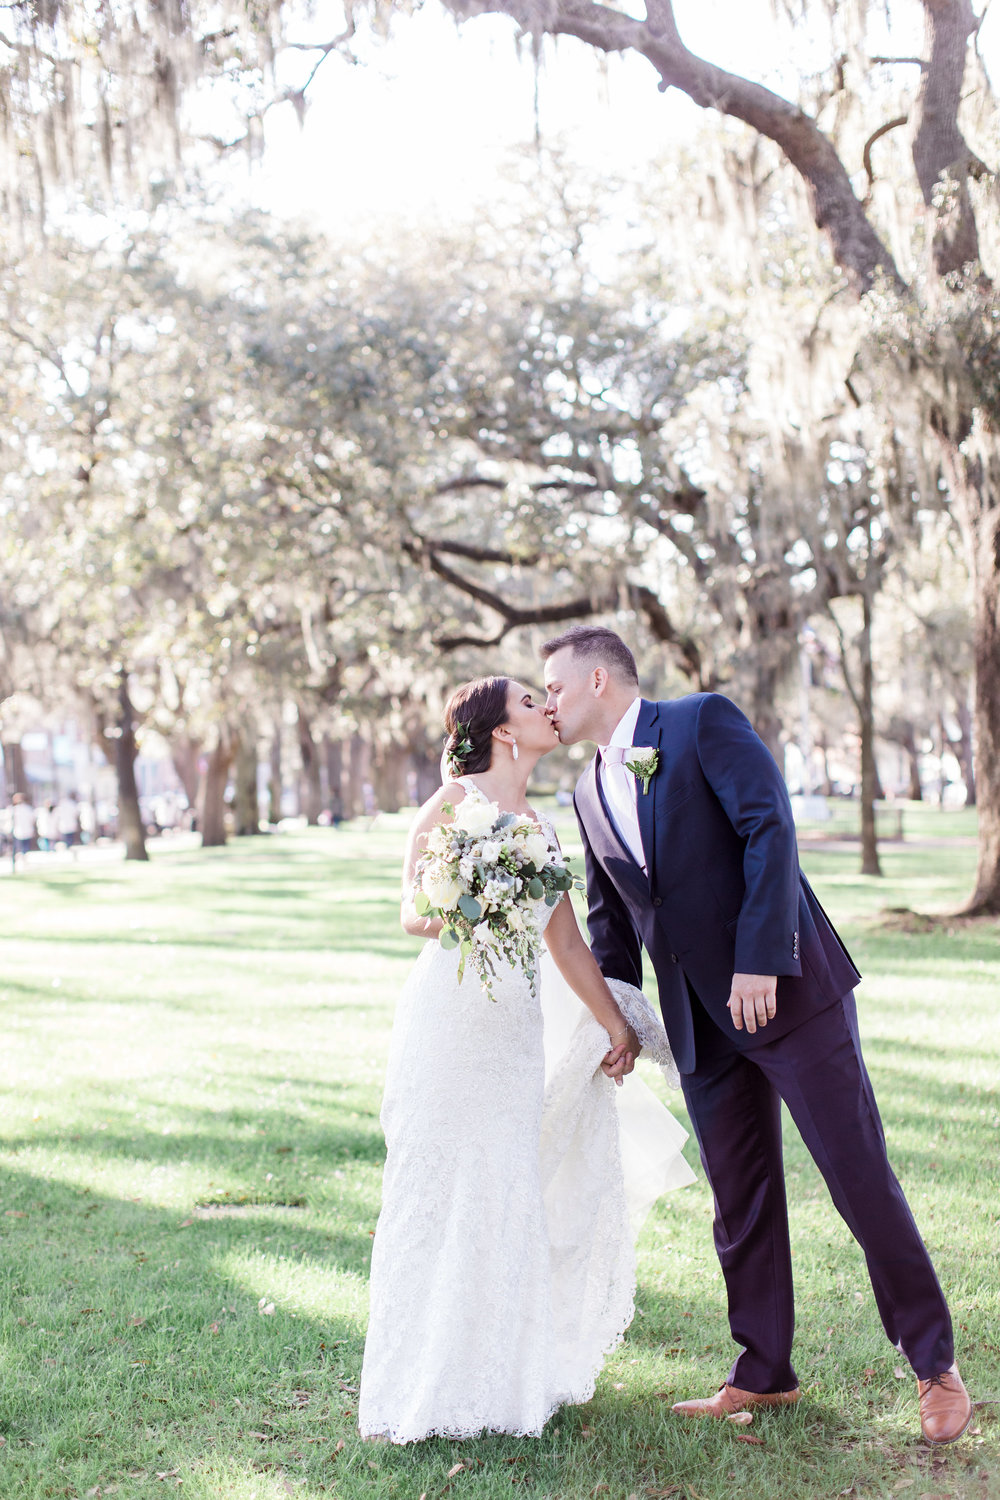 apt-b-photography-Savannah-wedding-photographer-savannah-engagement-photographer-historic-savannah-engagement-charles-h-morris-center-wedding-savannah-weddings-25.JPG